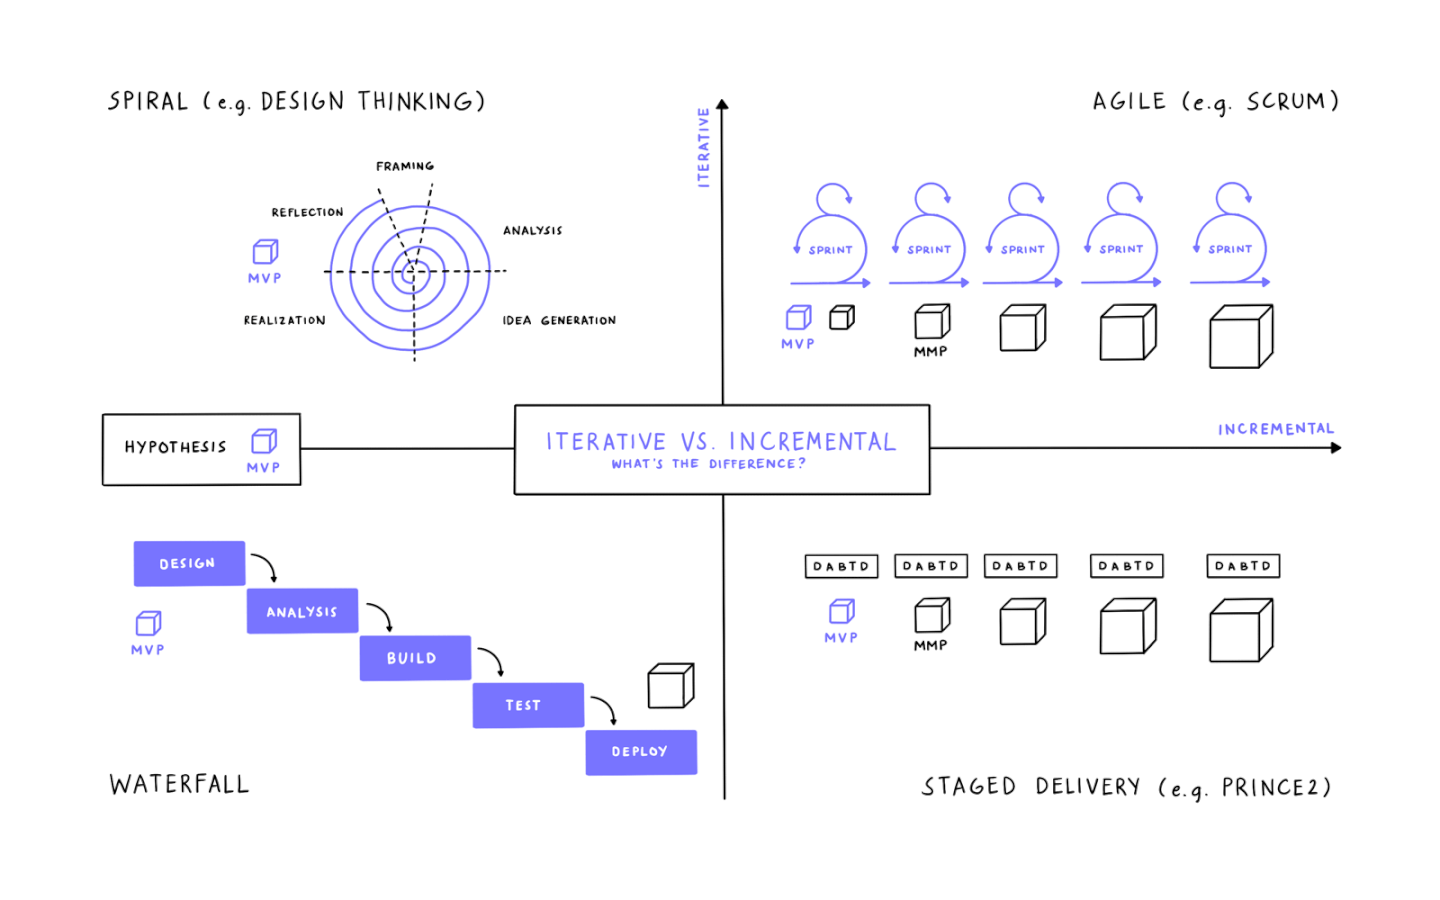 matrix showing the difference between iterative and incremental development